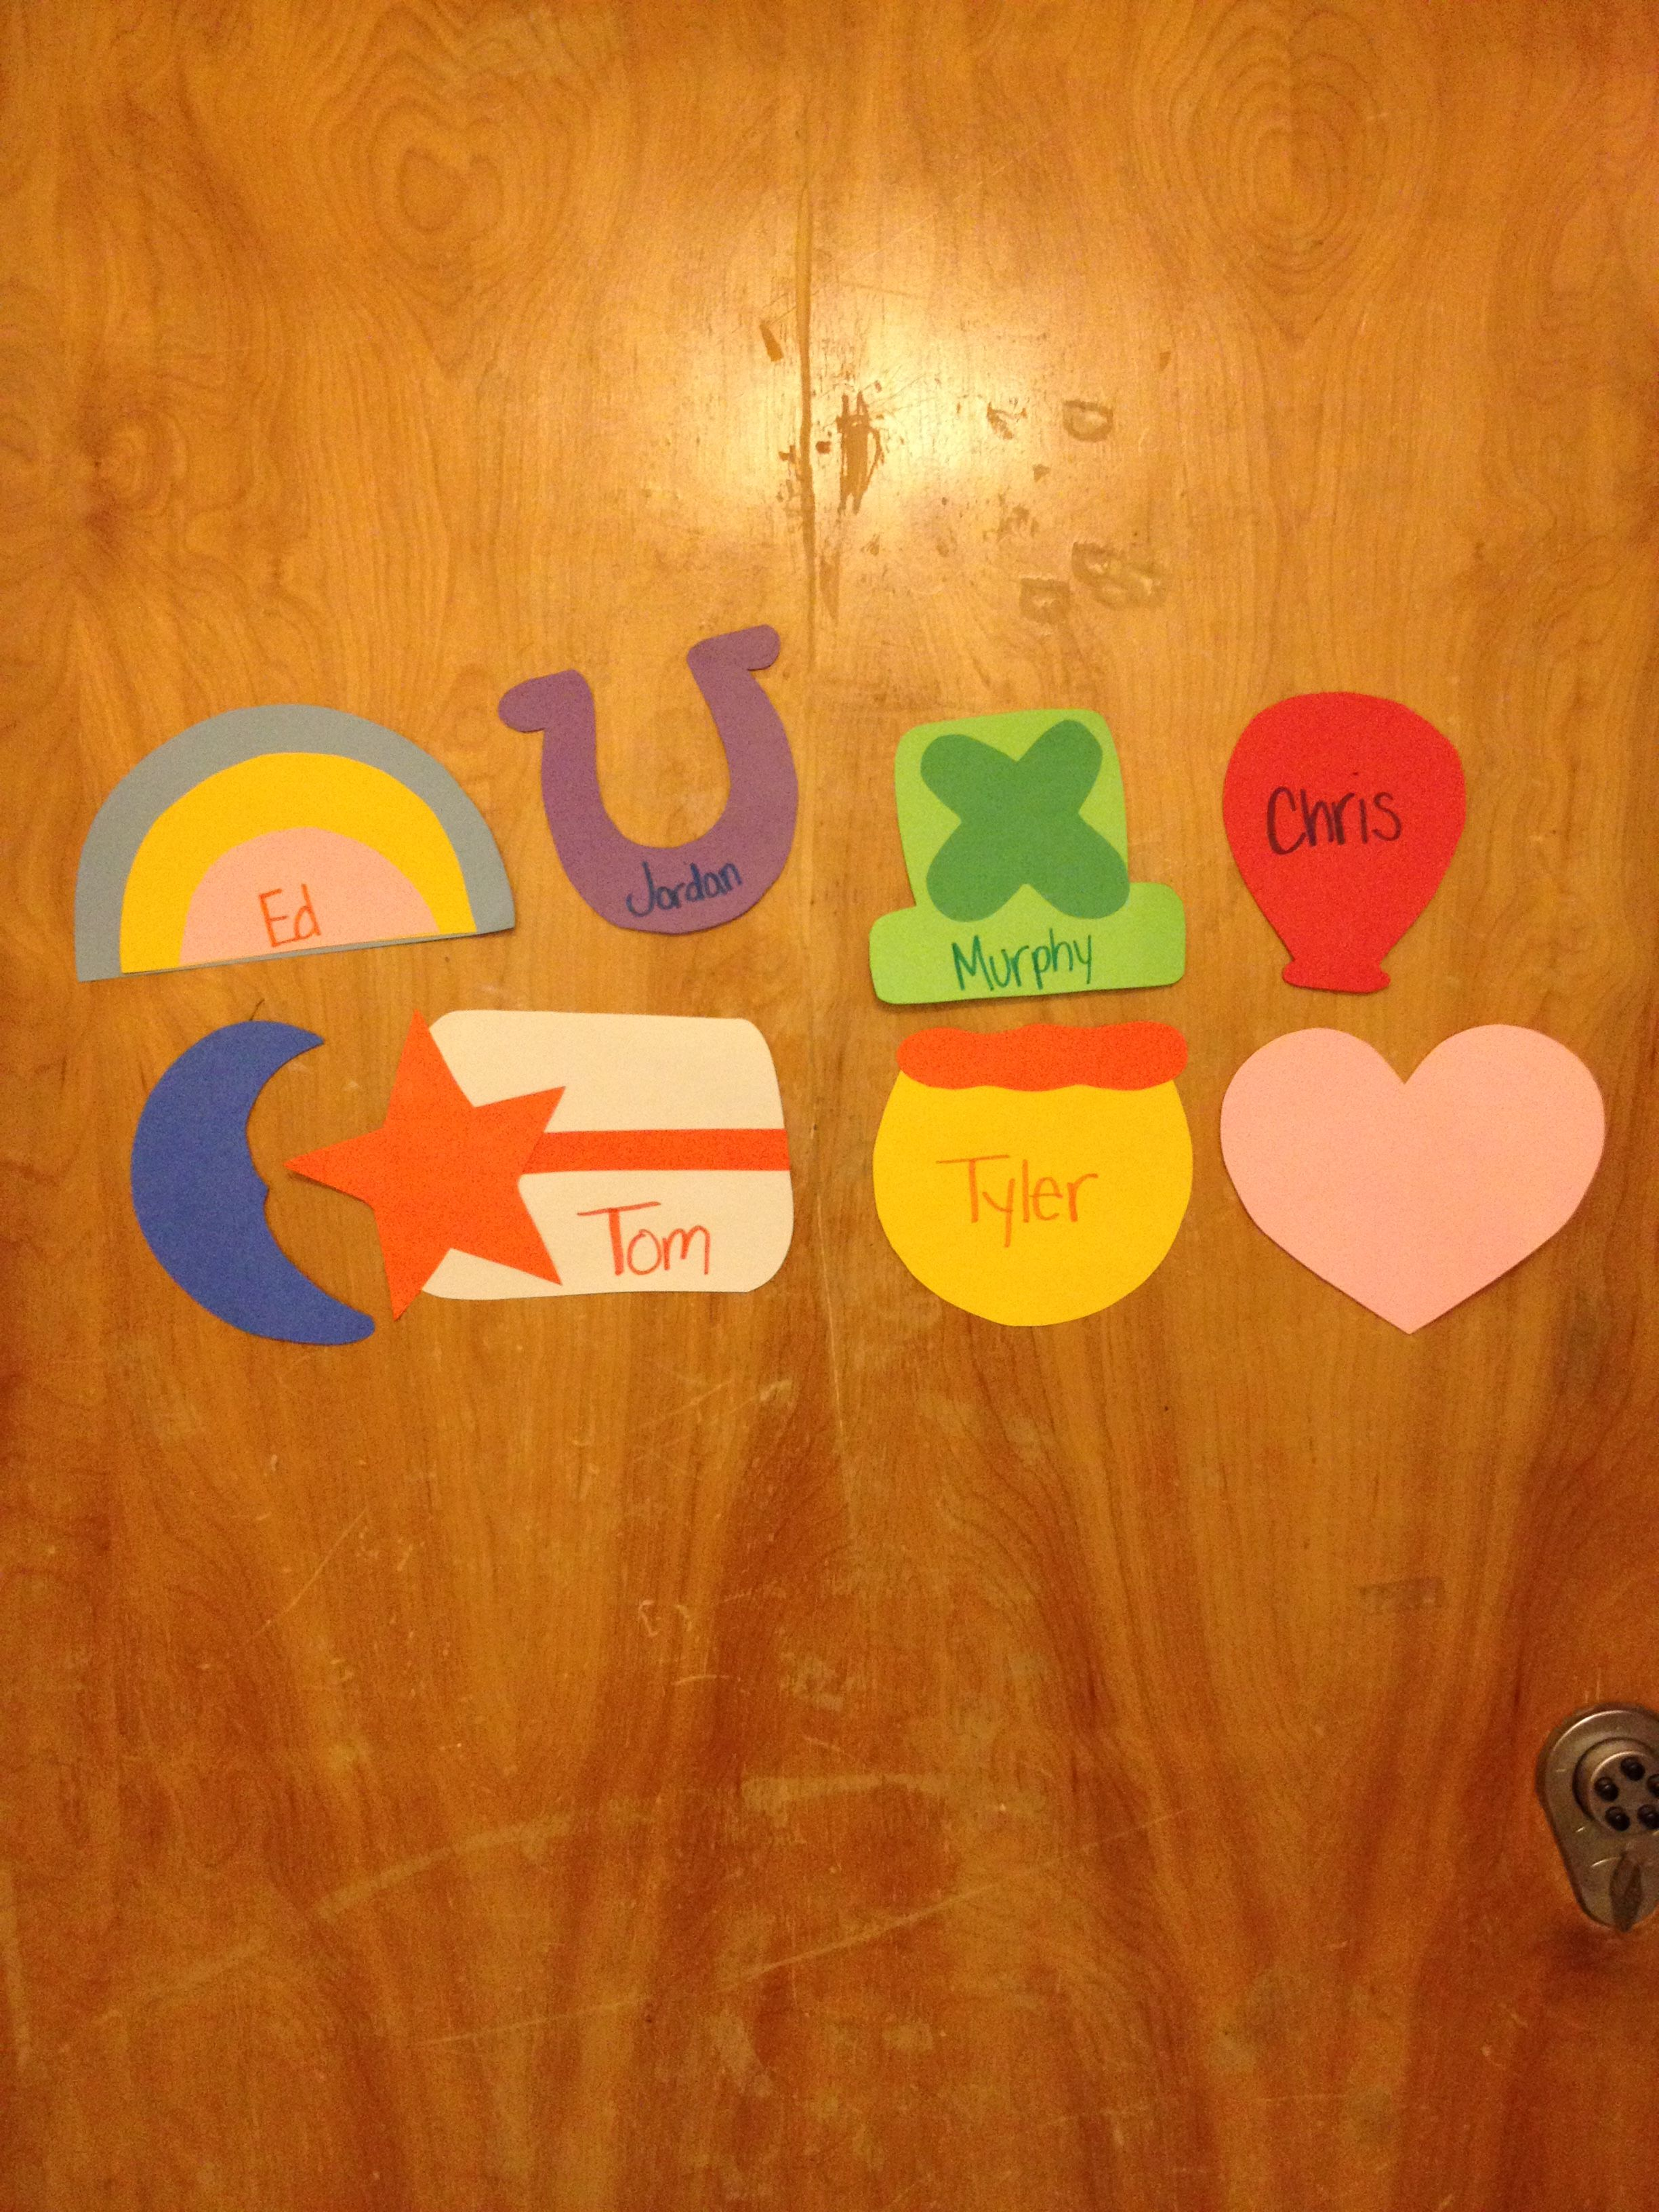 Le Meilleur Lucky Charms Door Tags Ra Boards And Door Tags Door Ce Mois Ci